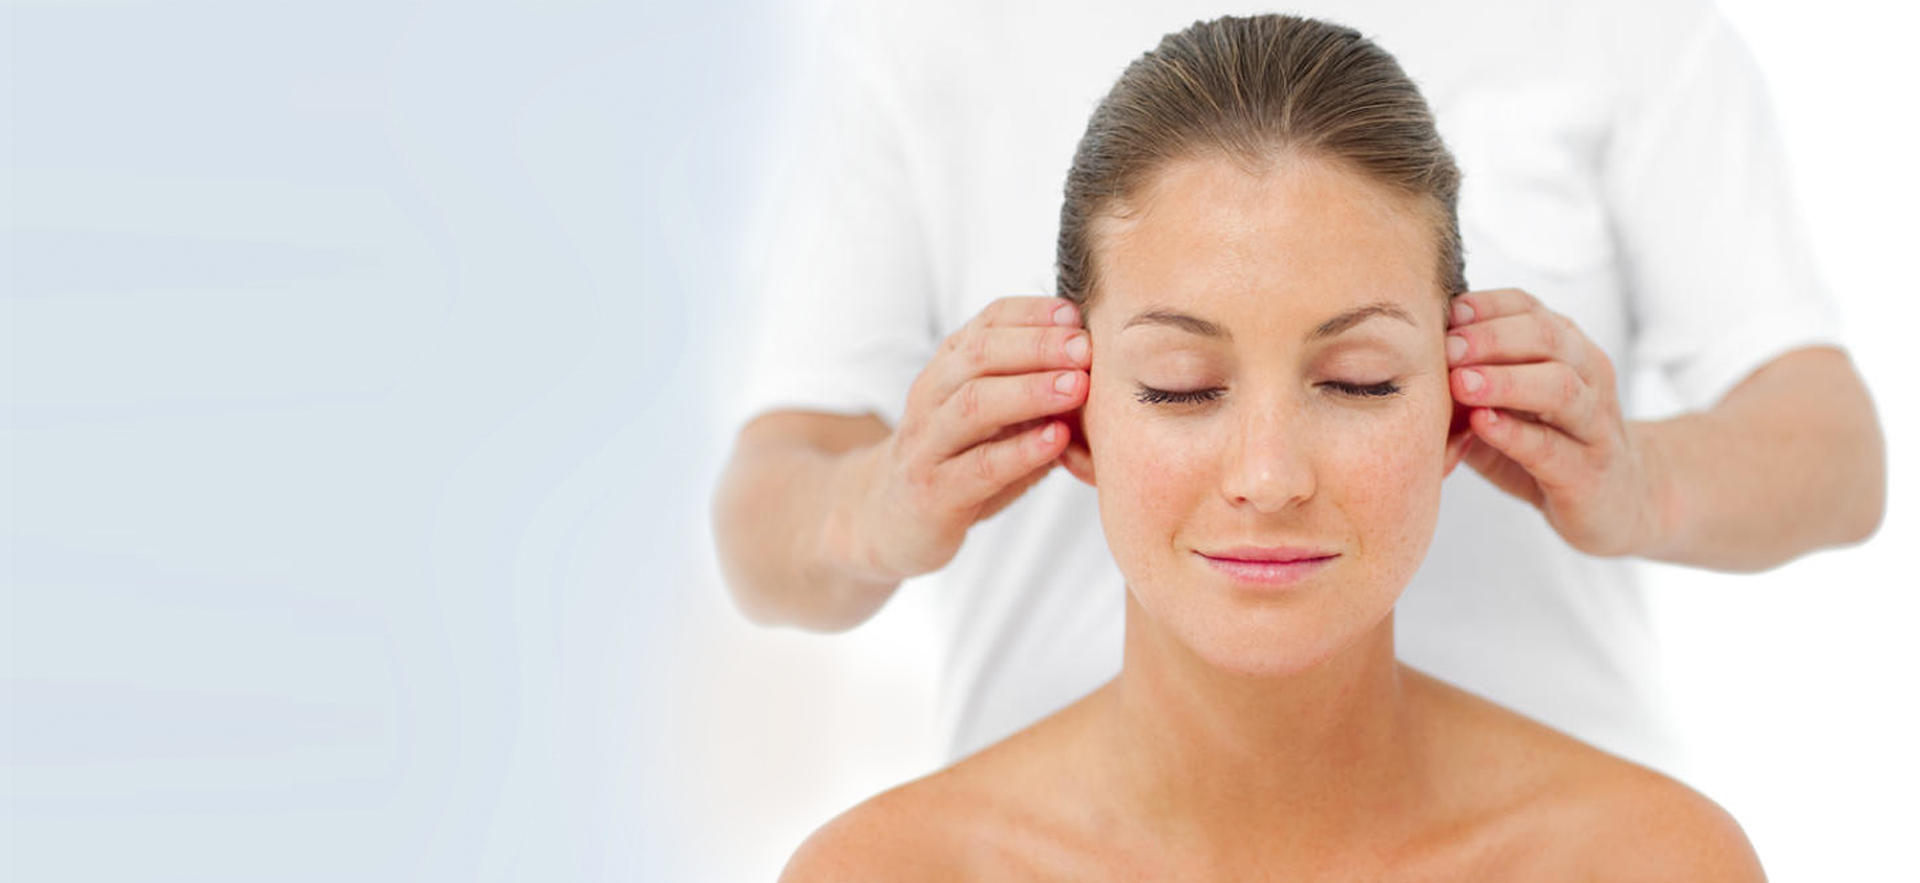 Indian Head Massage Indian Head Massage Studio 7 therapies